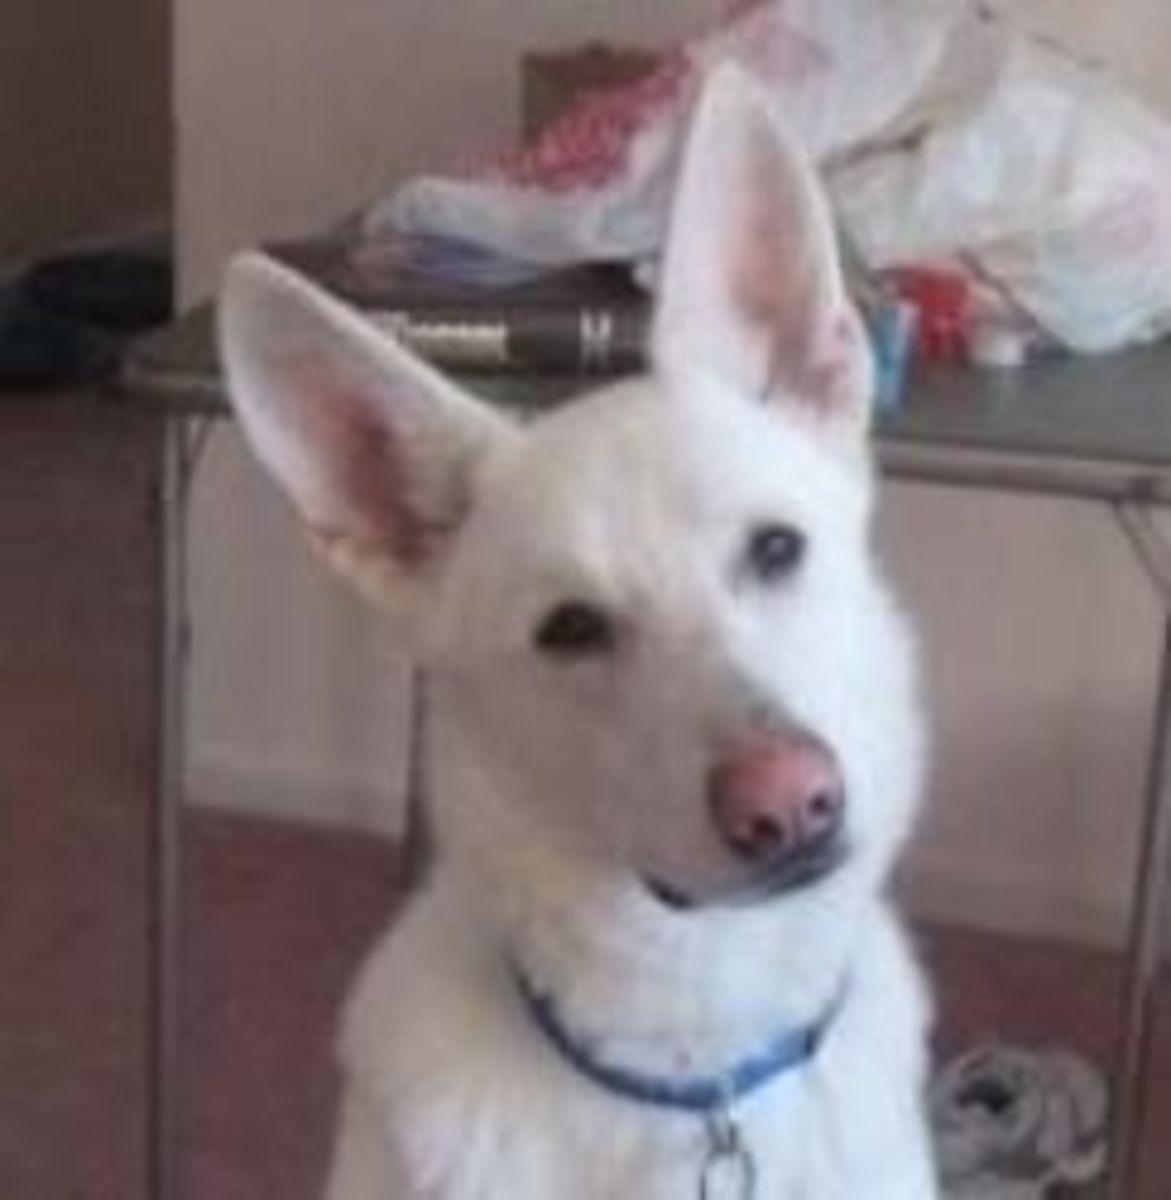 Ruger is a big White German Shepherd Dog and he needs a new home.